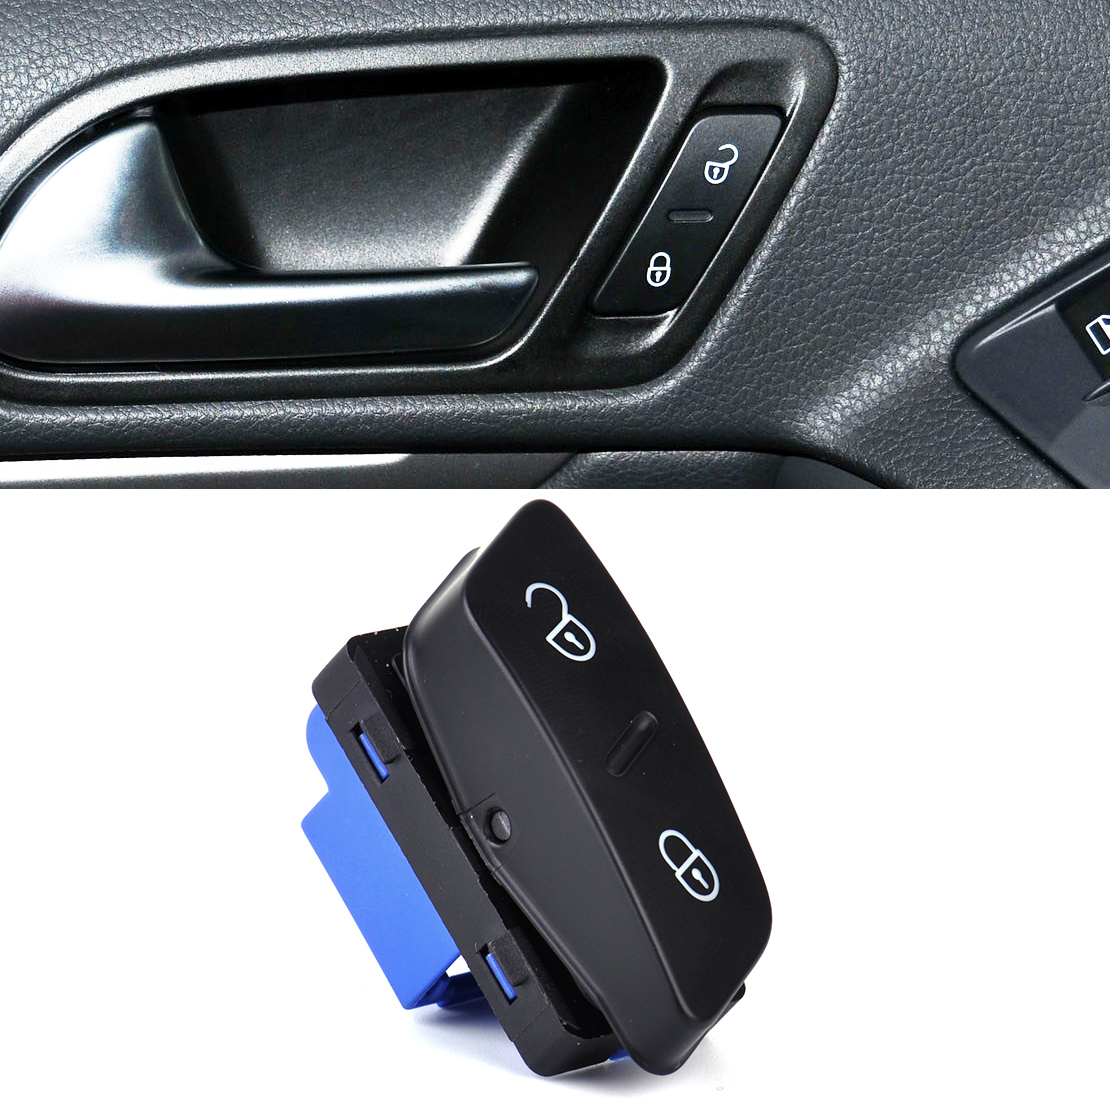 CITALL Drivers Side Central Door Lock Switch Button fit for VW Jetta Golf GTI MK5 Tiguan 1K0962125B Only Left Hand Drive